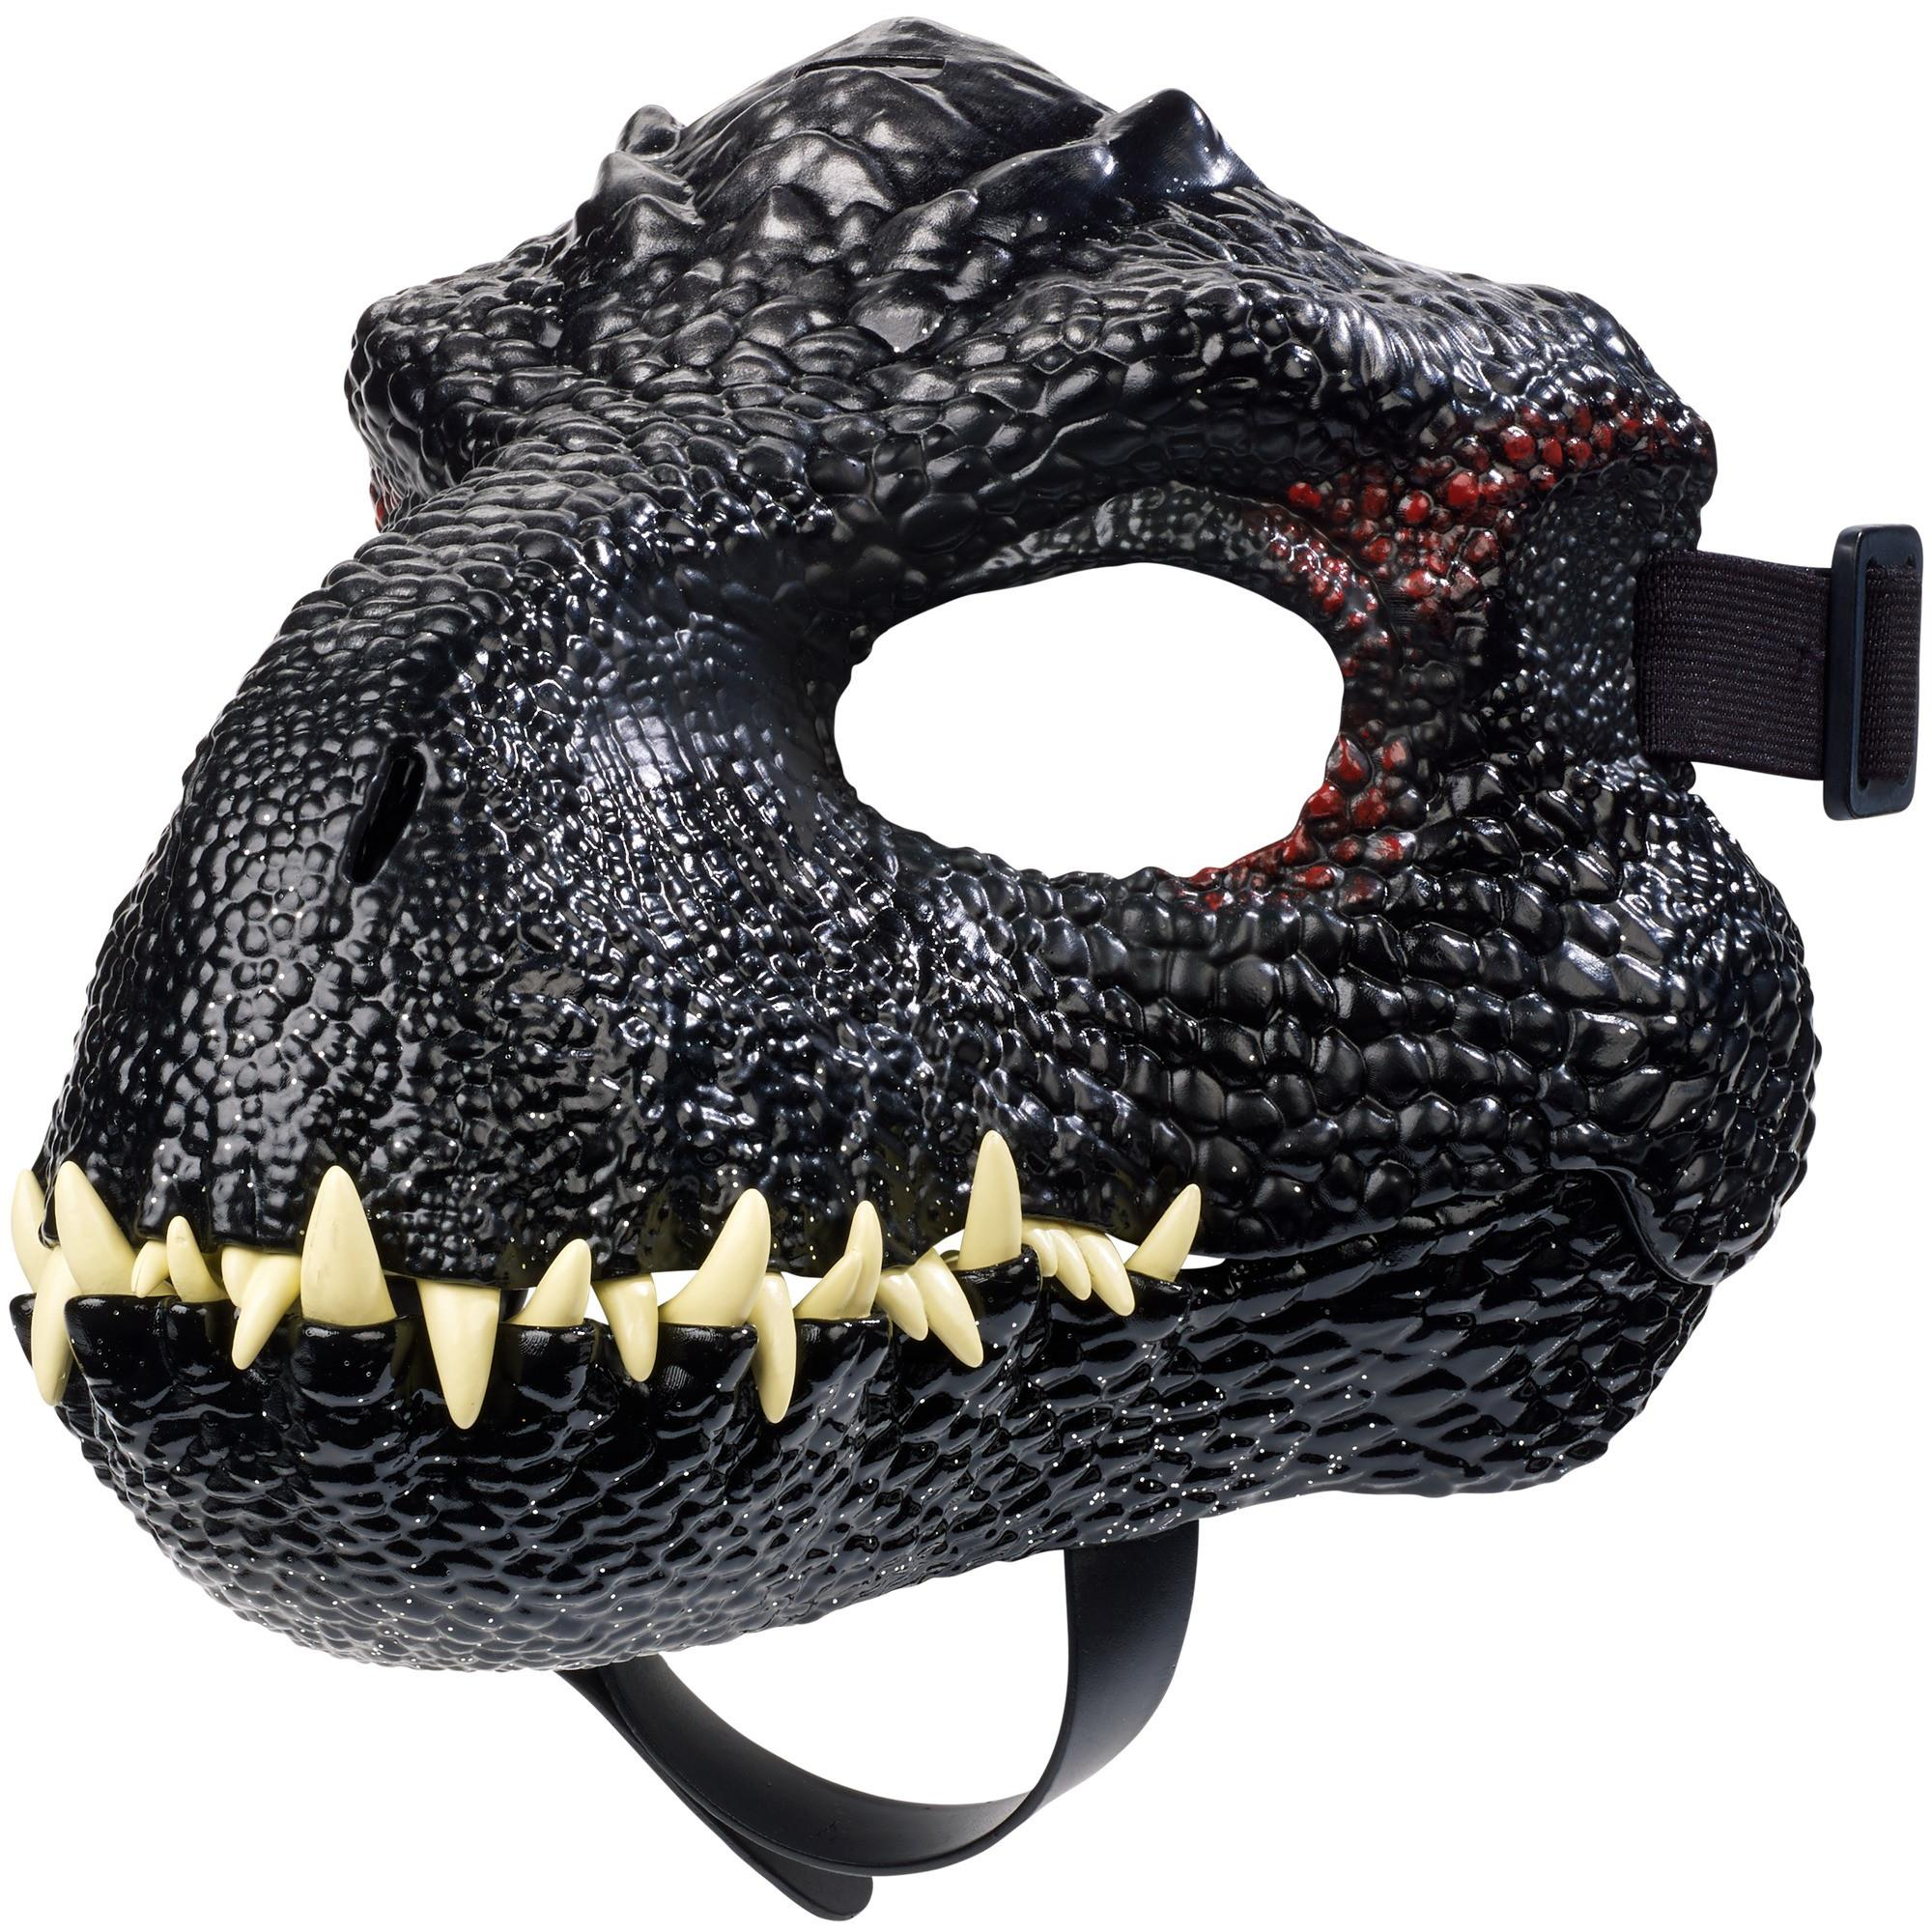 Jurassic World Indoraptor Mask